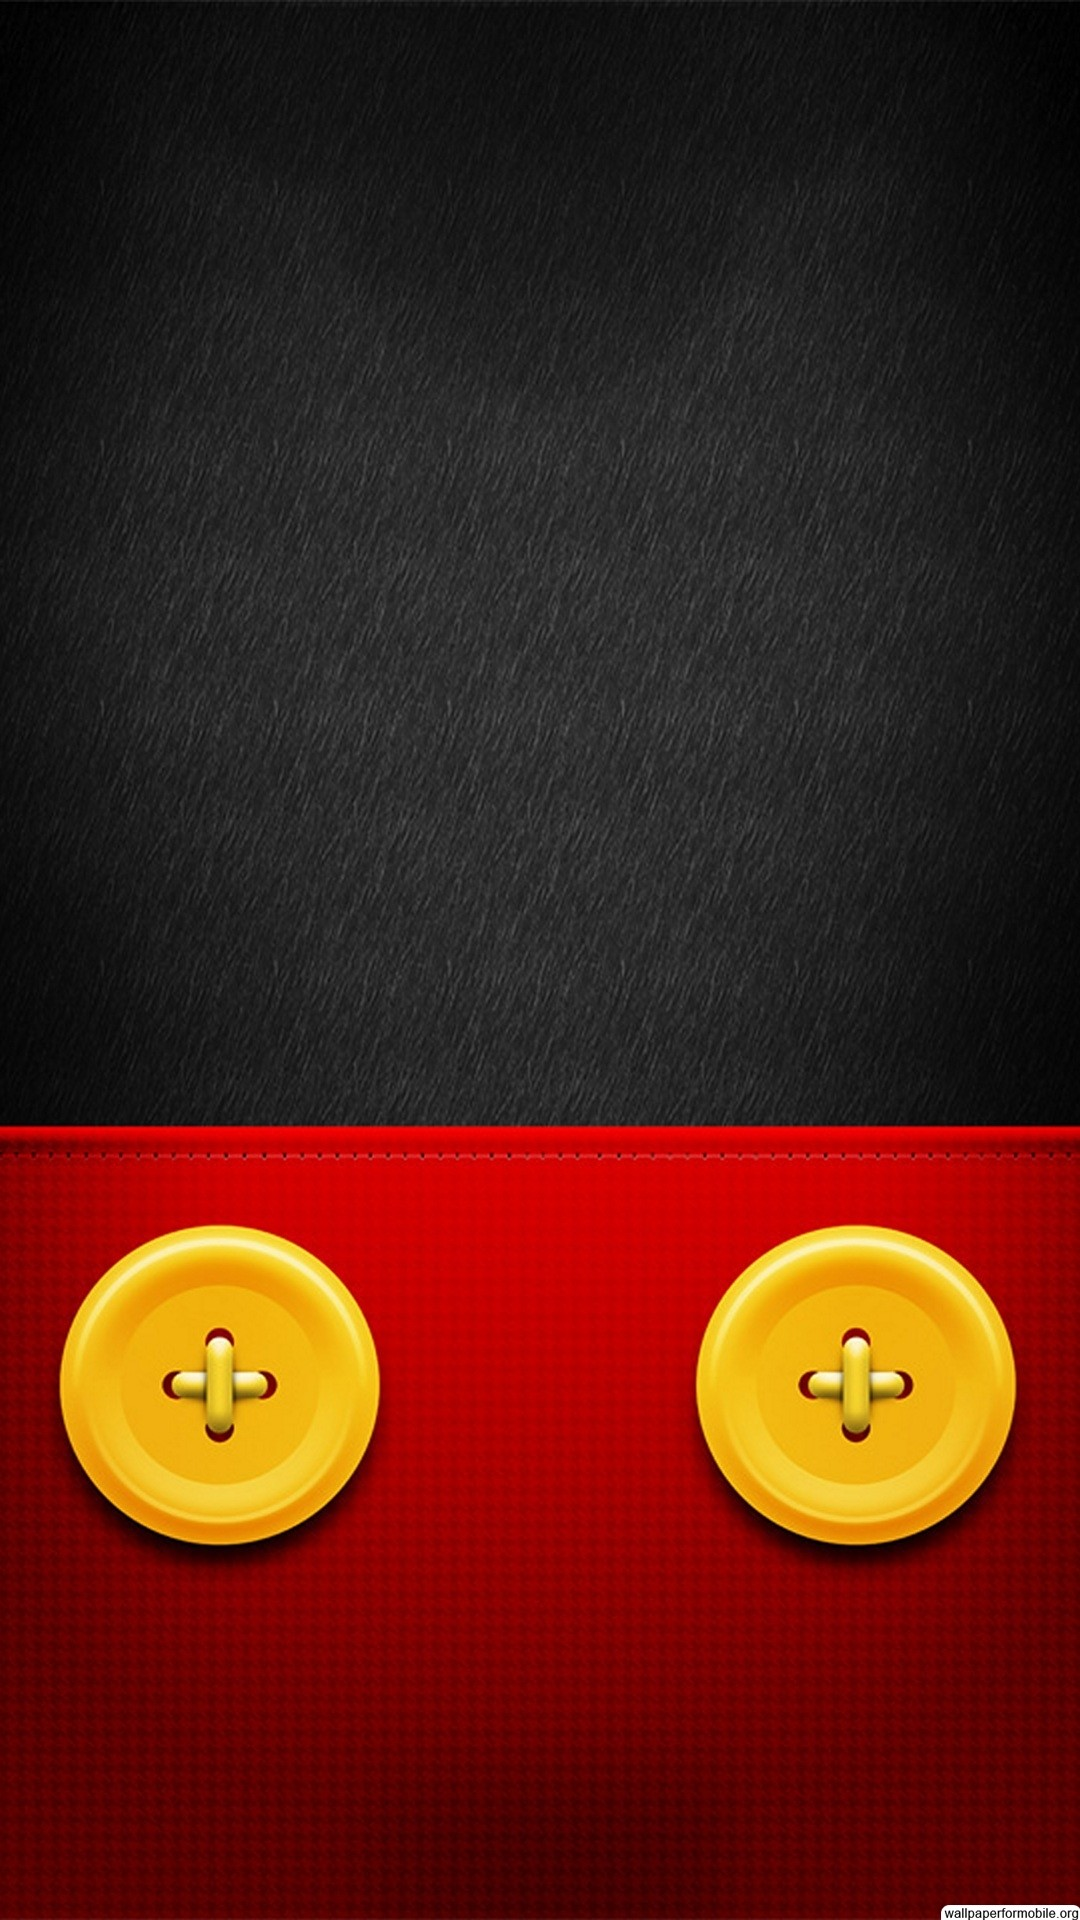 1080x1920 0 Mickey Mouse Wallpaper Desktop | WallpaperSafari Mickey Mouse Wallpaper  For Iphone Wallpaper for Mobile